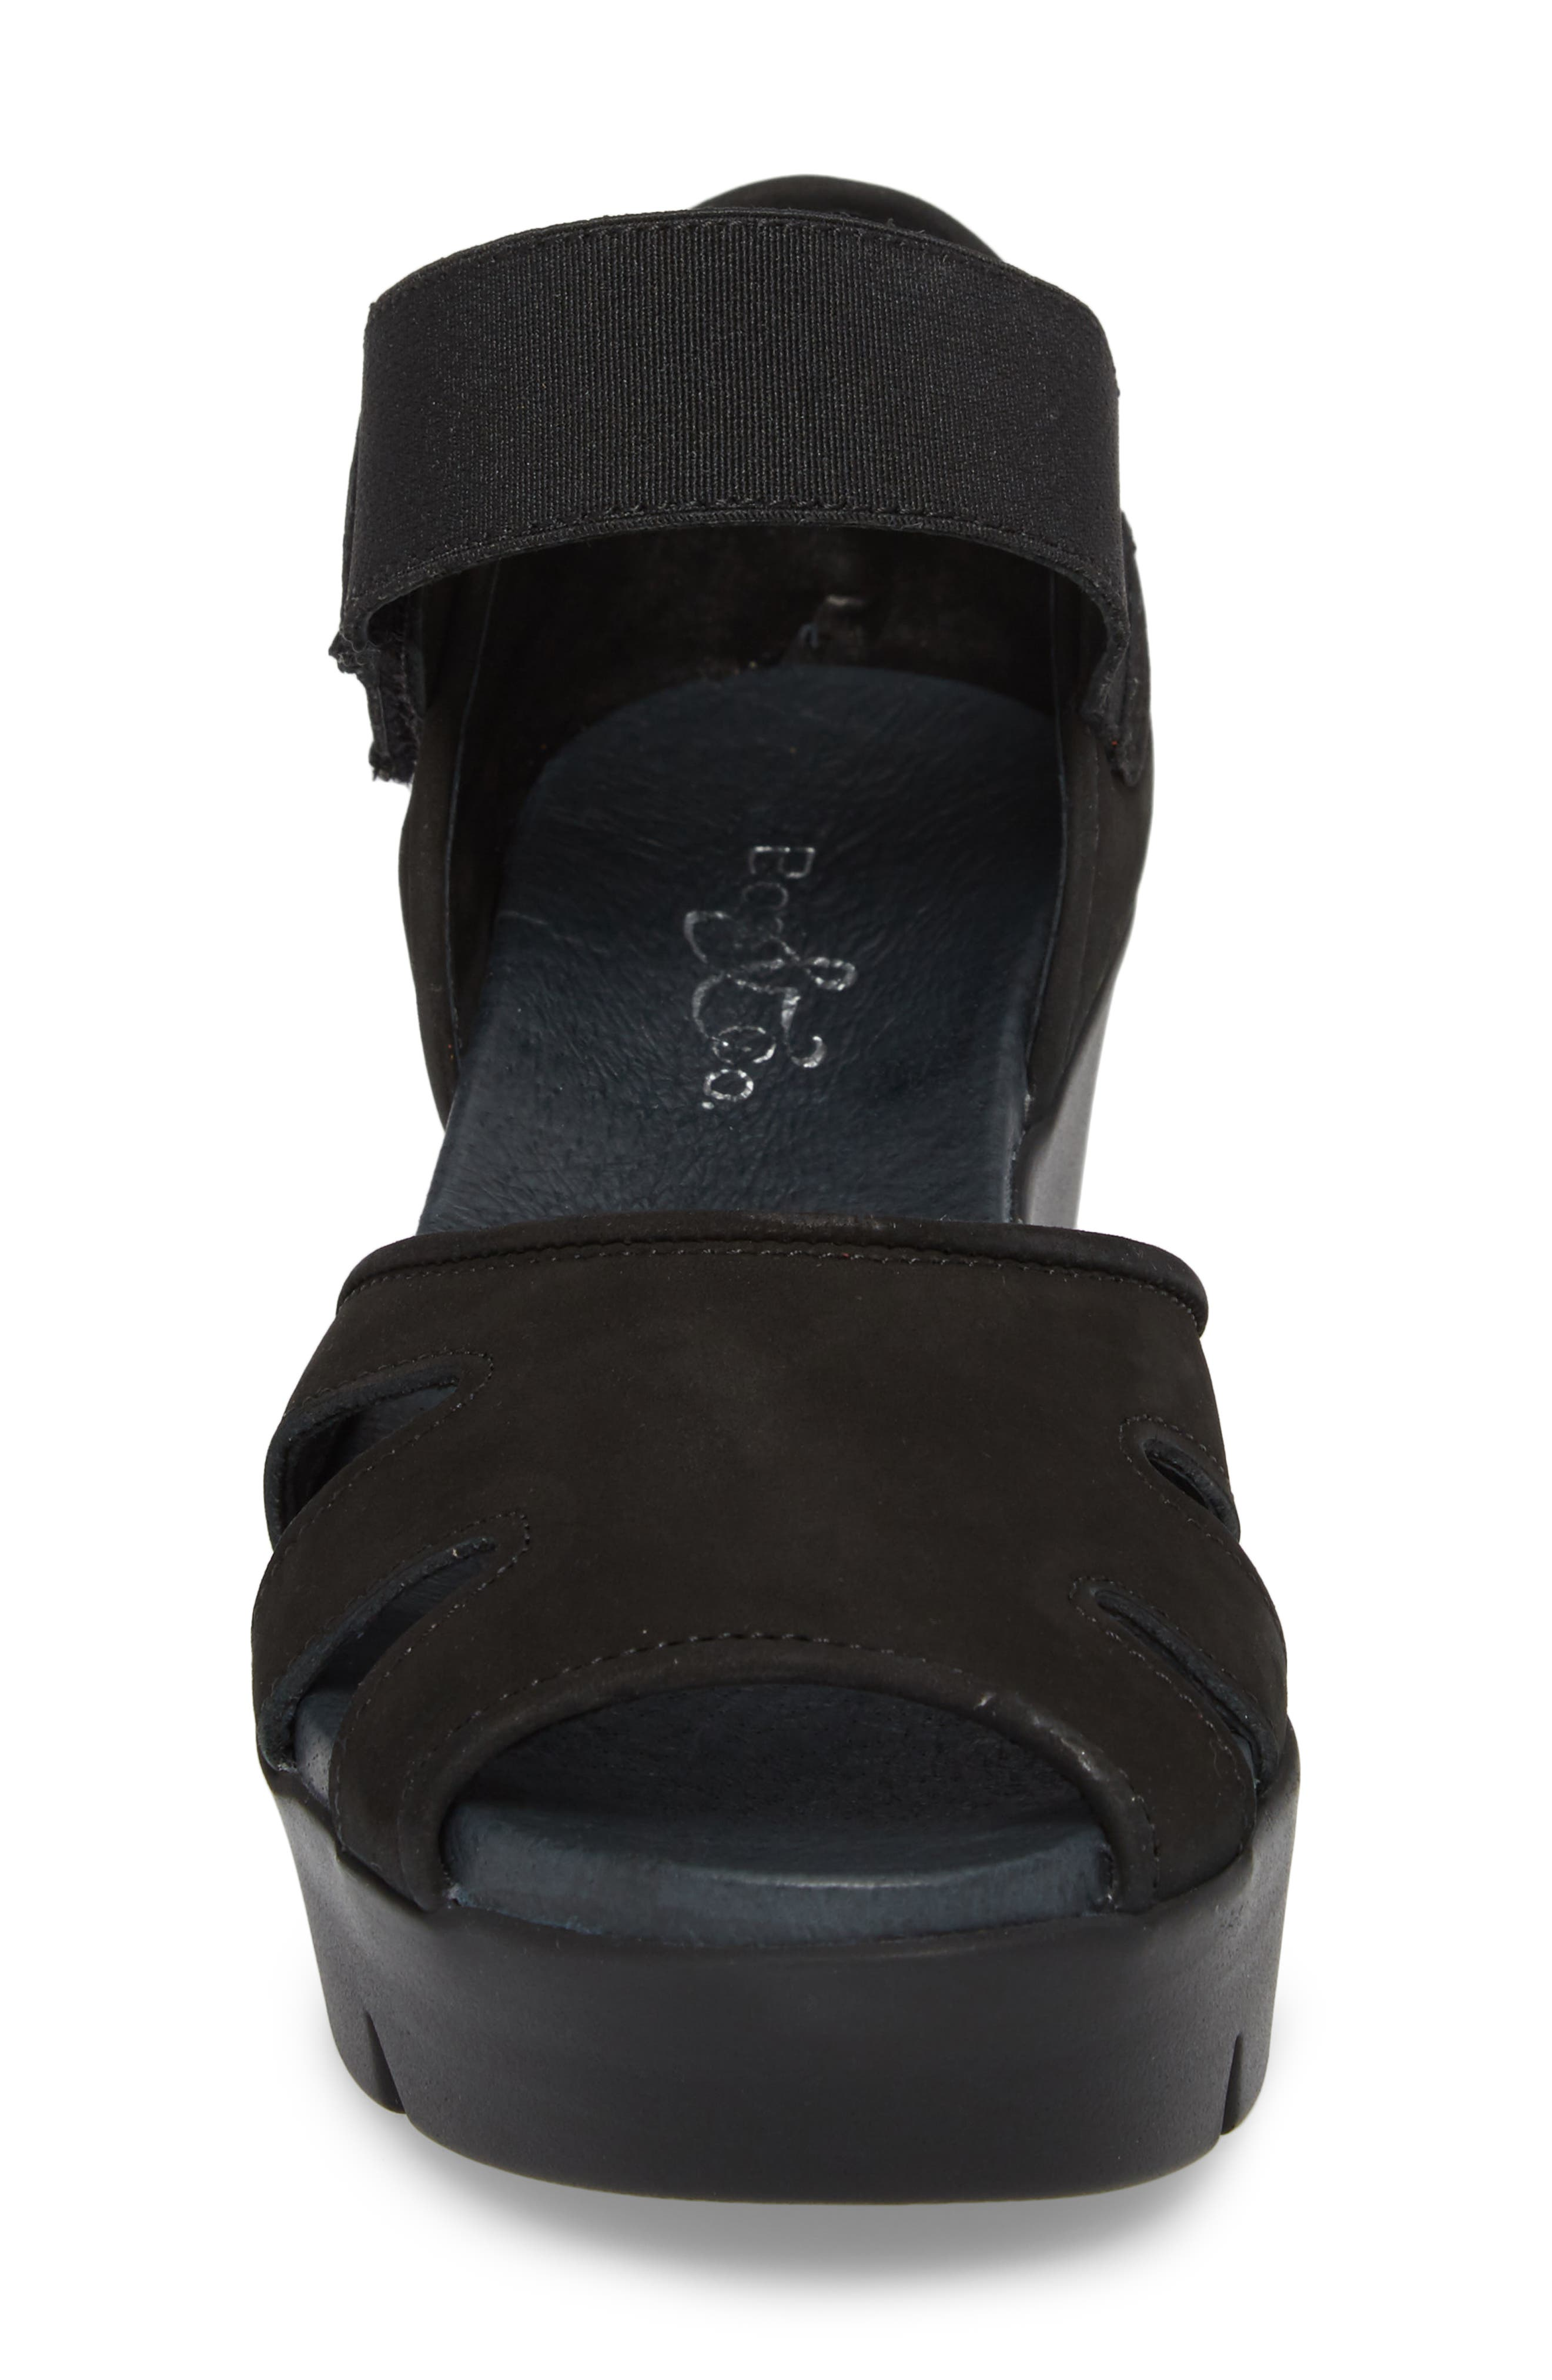 Sharon Platform Wedge Sandal,                             Alternate thumbnail 4, color,                             BLACK NUBUCK LEATHER